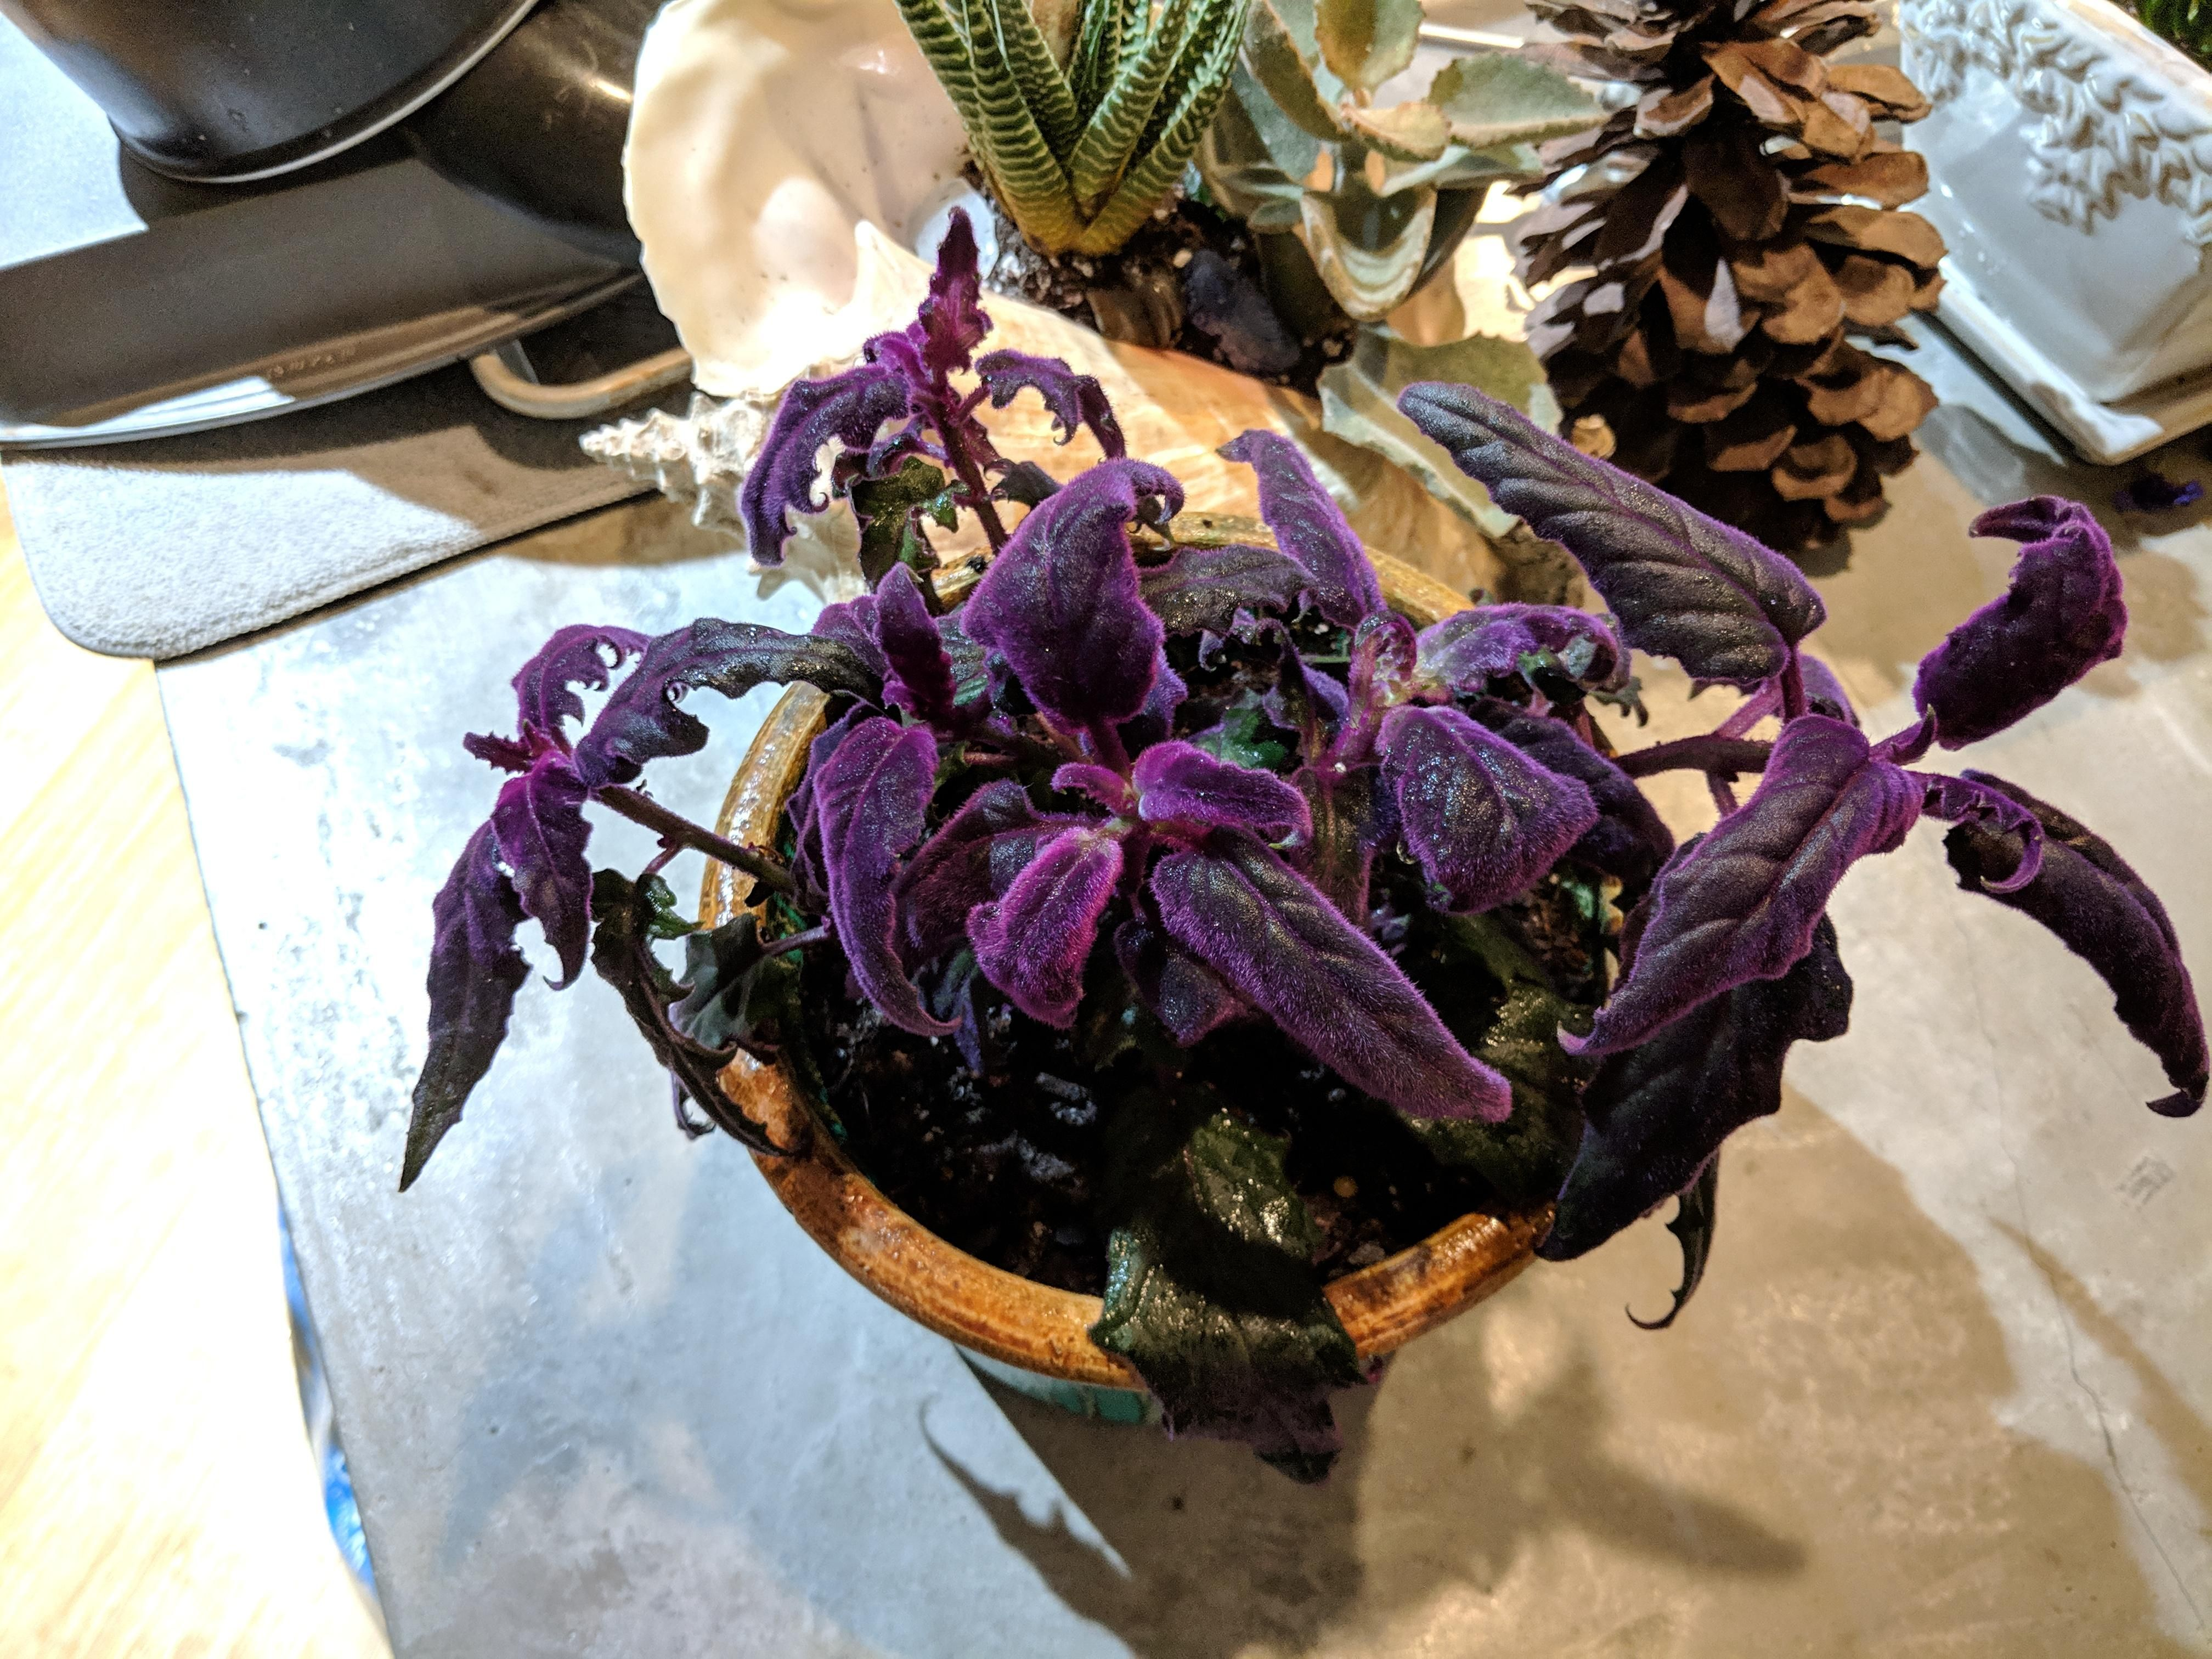 Another new plant. This ones called Purple Passion. Its